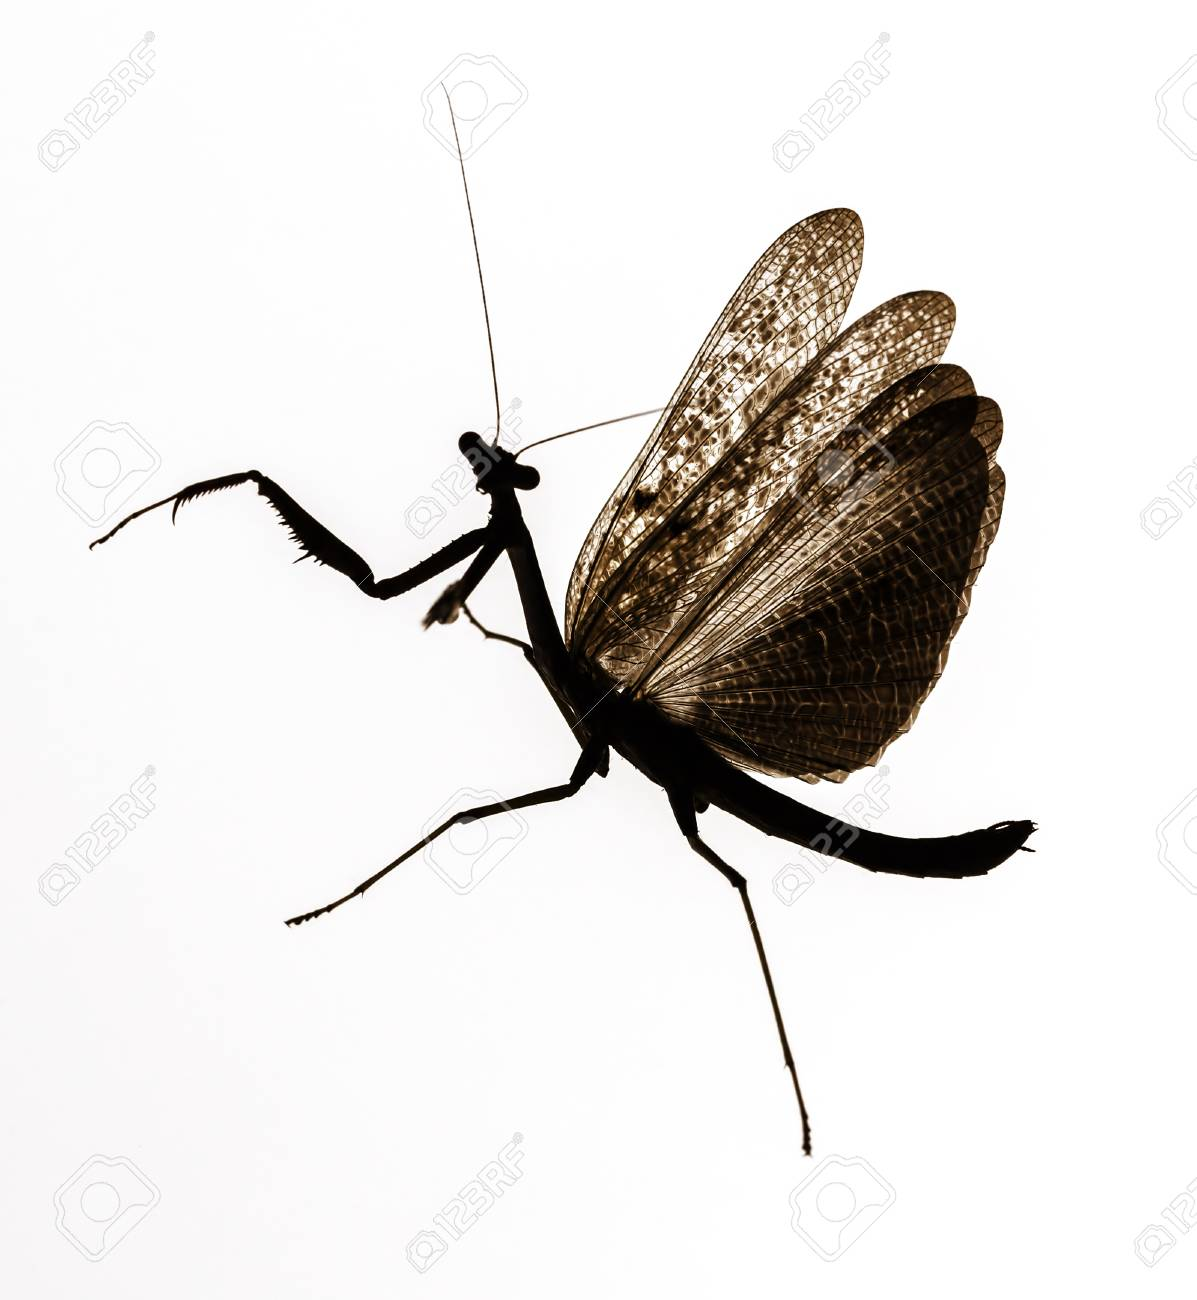 Praying Mantis With Spreaded Wings On White Background Stock Photo